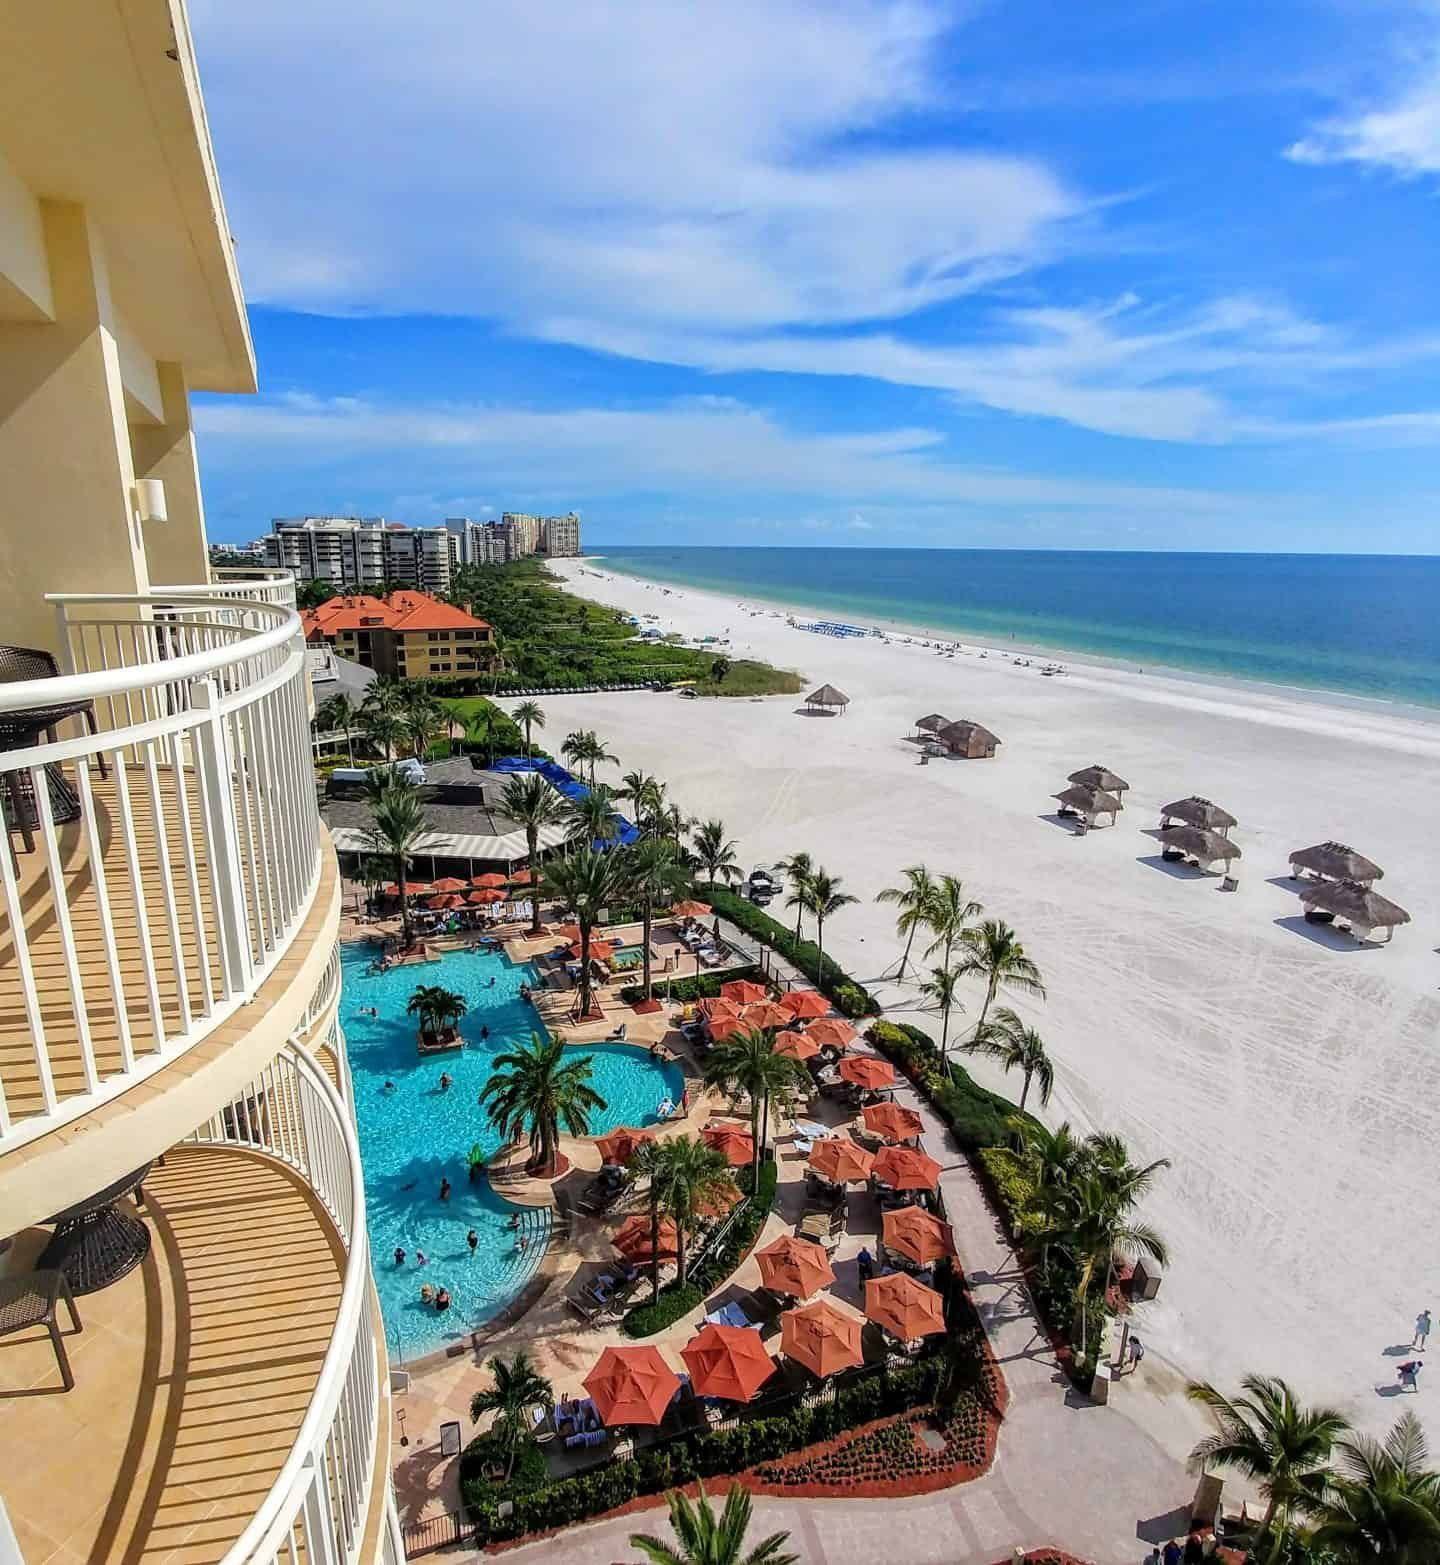 Marco Island Florida: 10 Reasons To Stay At The JW Marriott Marco Island Beach